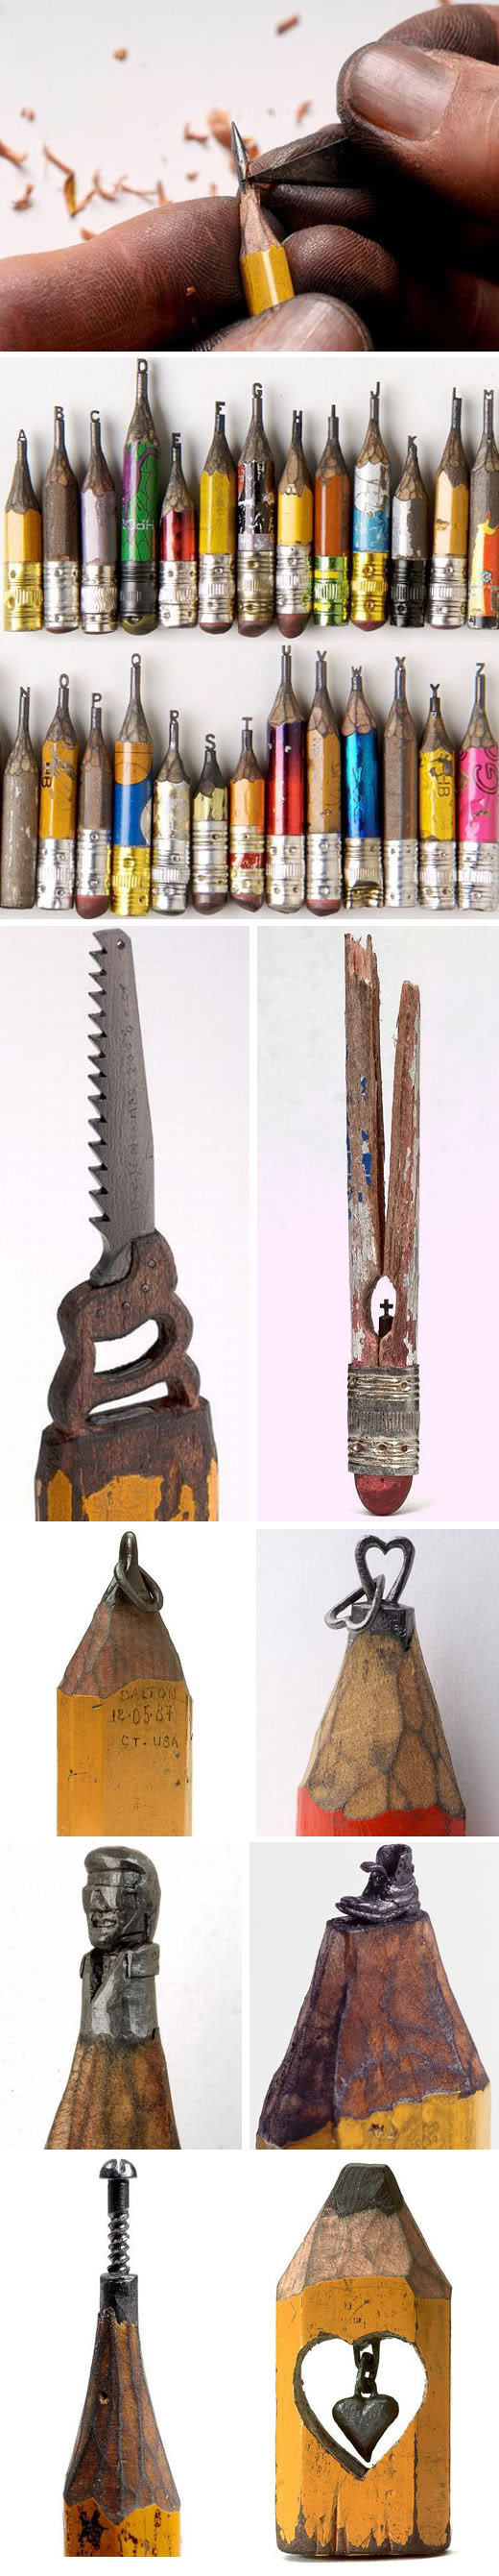 Pencil sculptures by dalton ghetti make something mondays